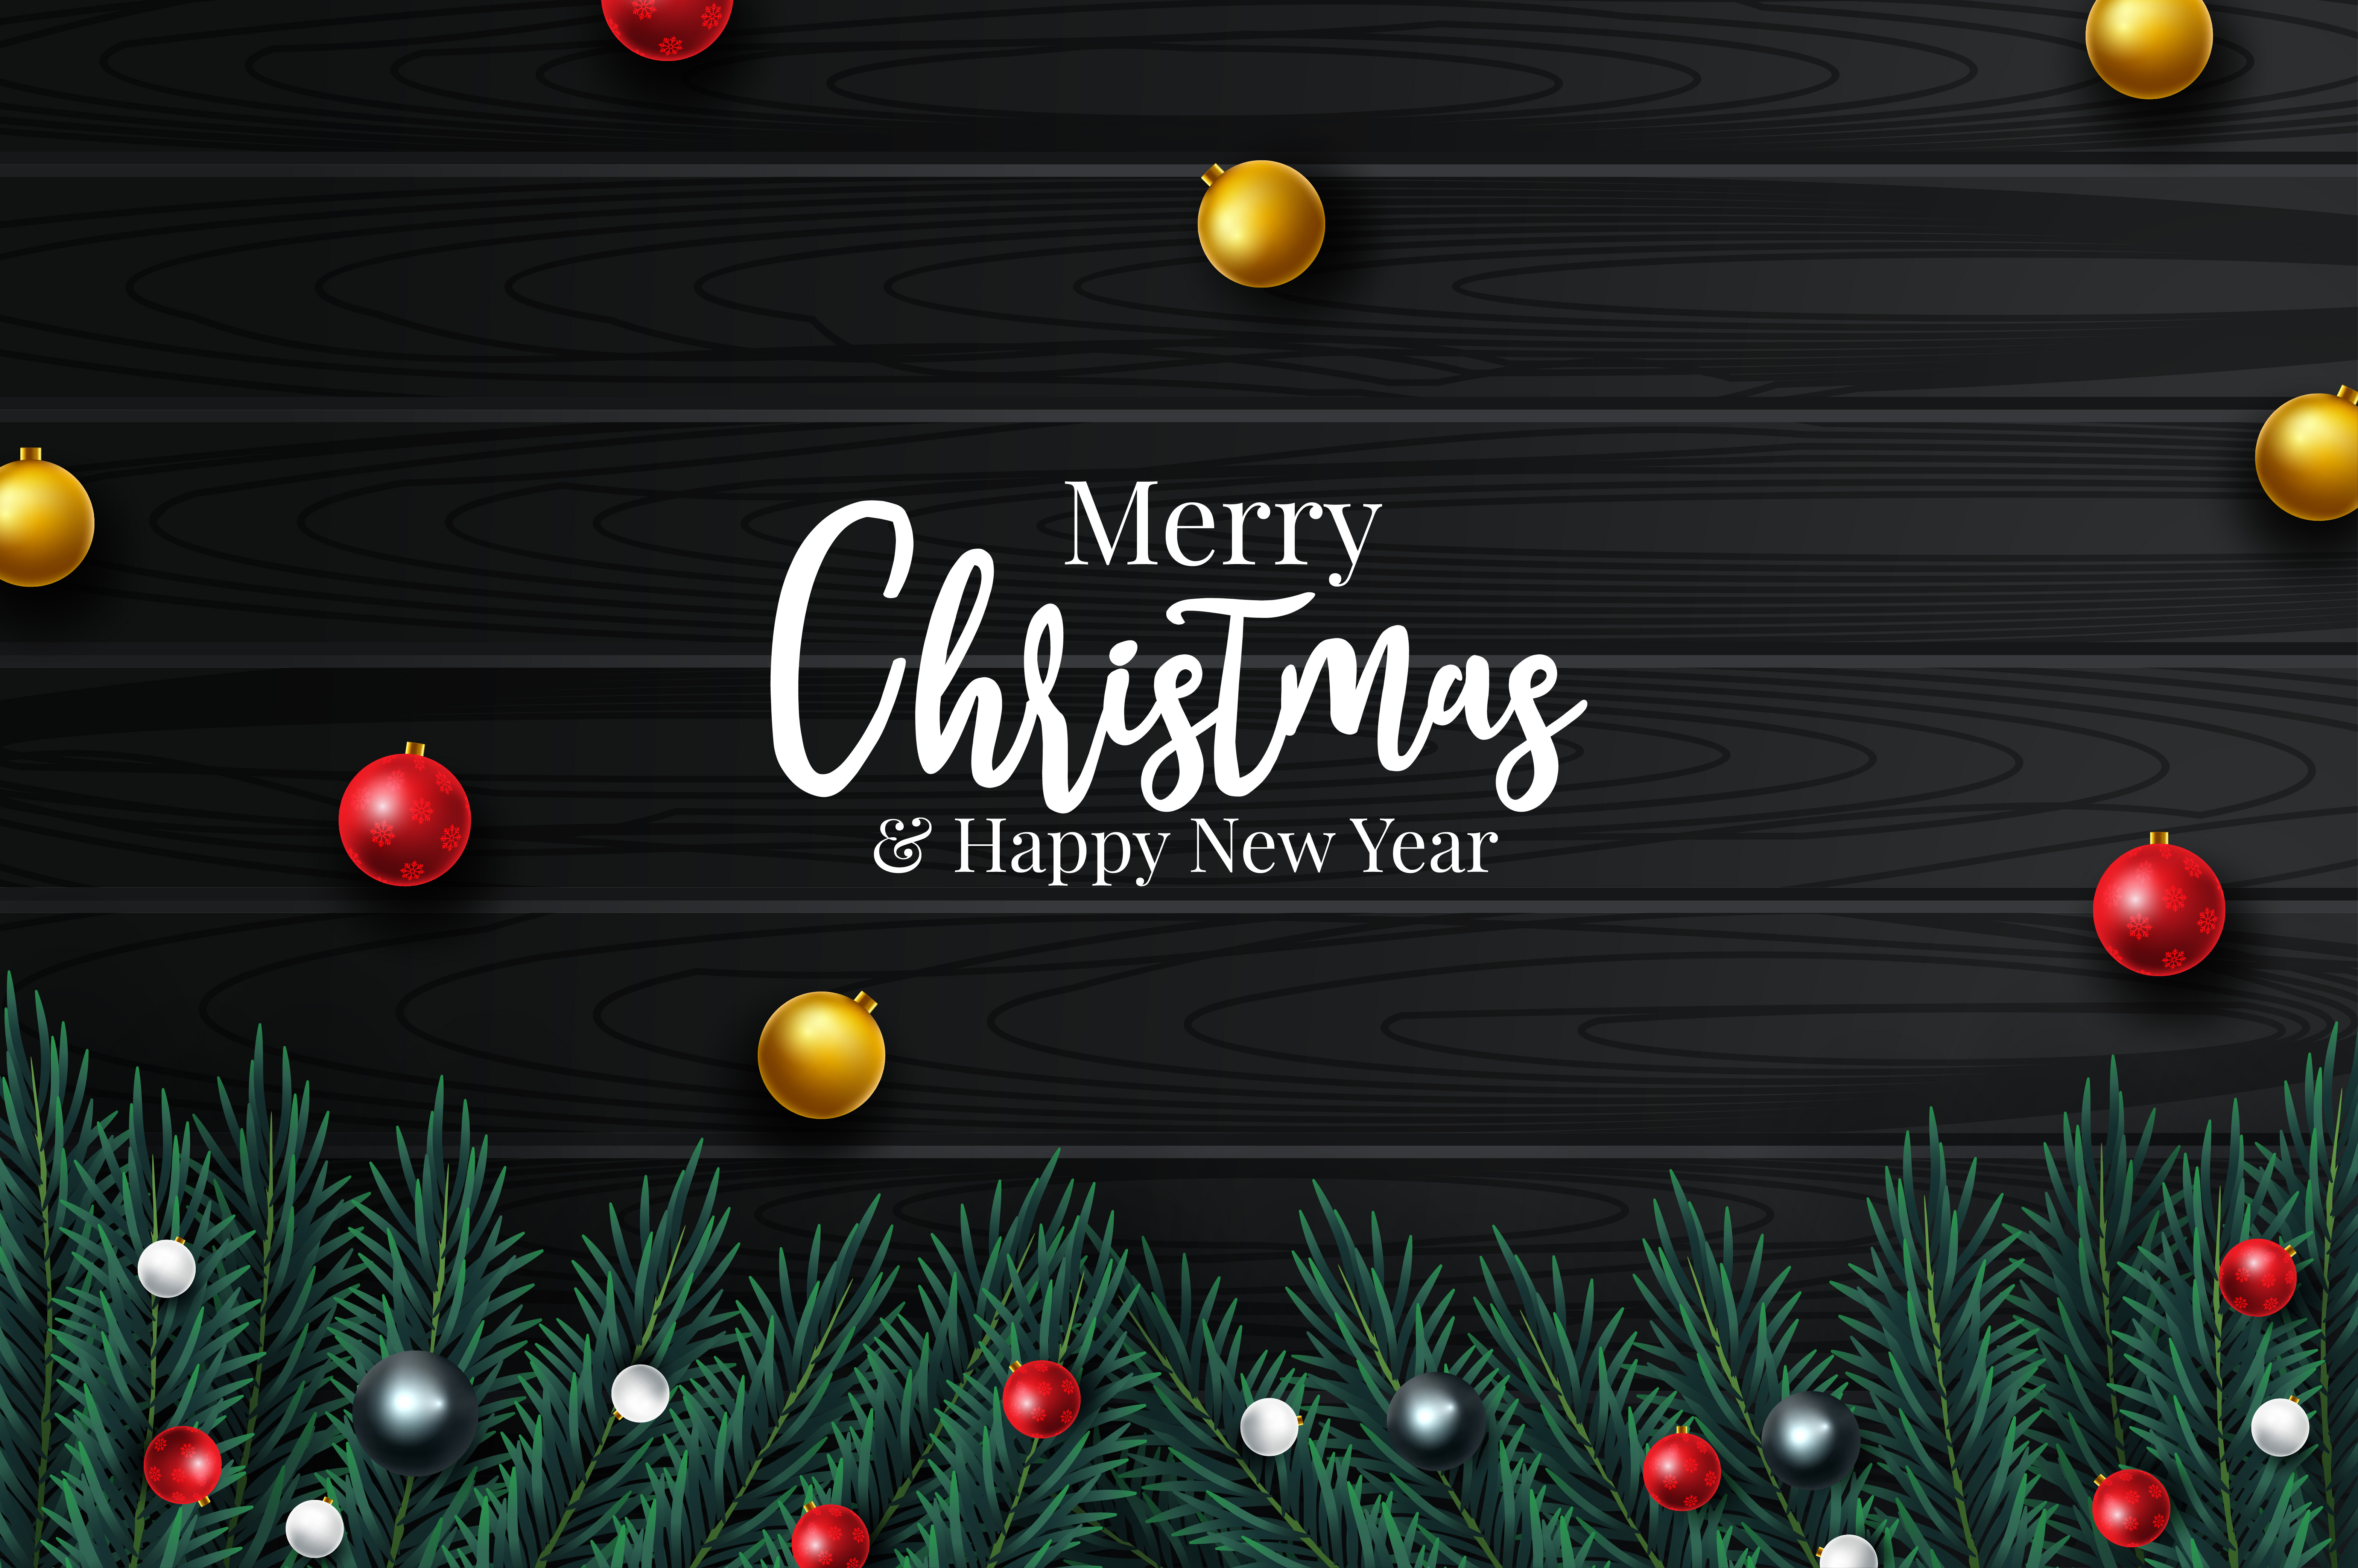 merry christmas and happy new year 2020 greeting card download free vectors clipart graphics vector art vecteezy